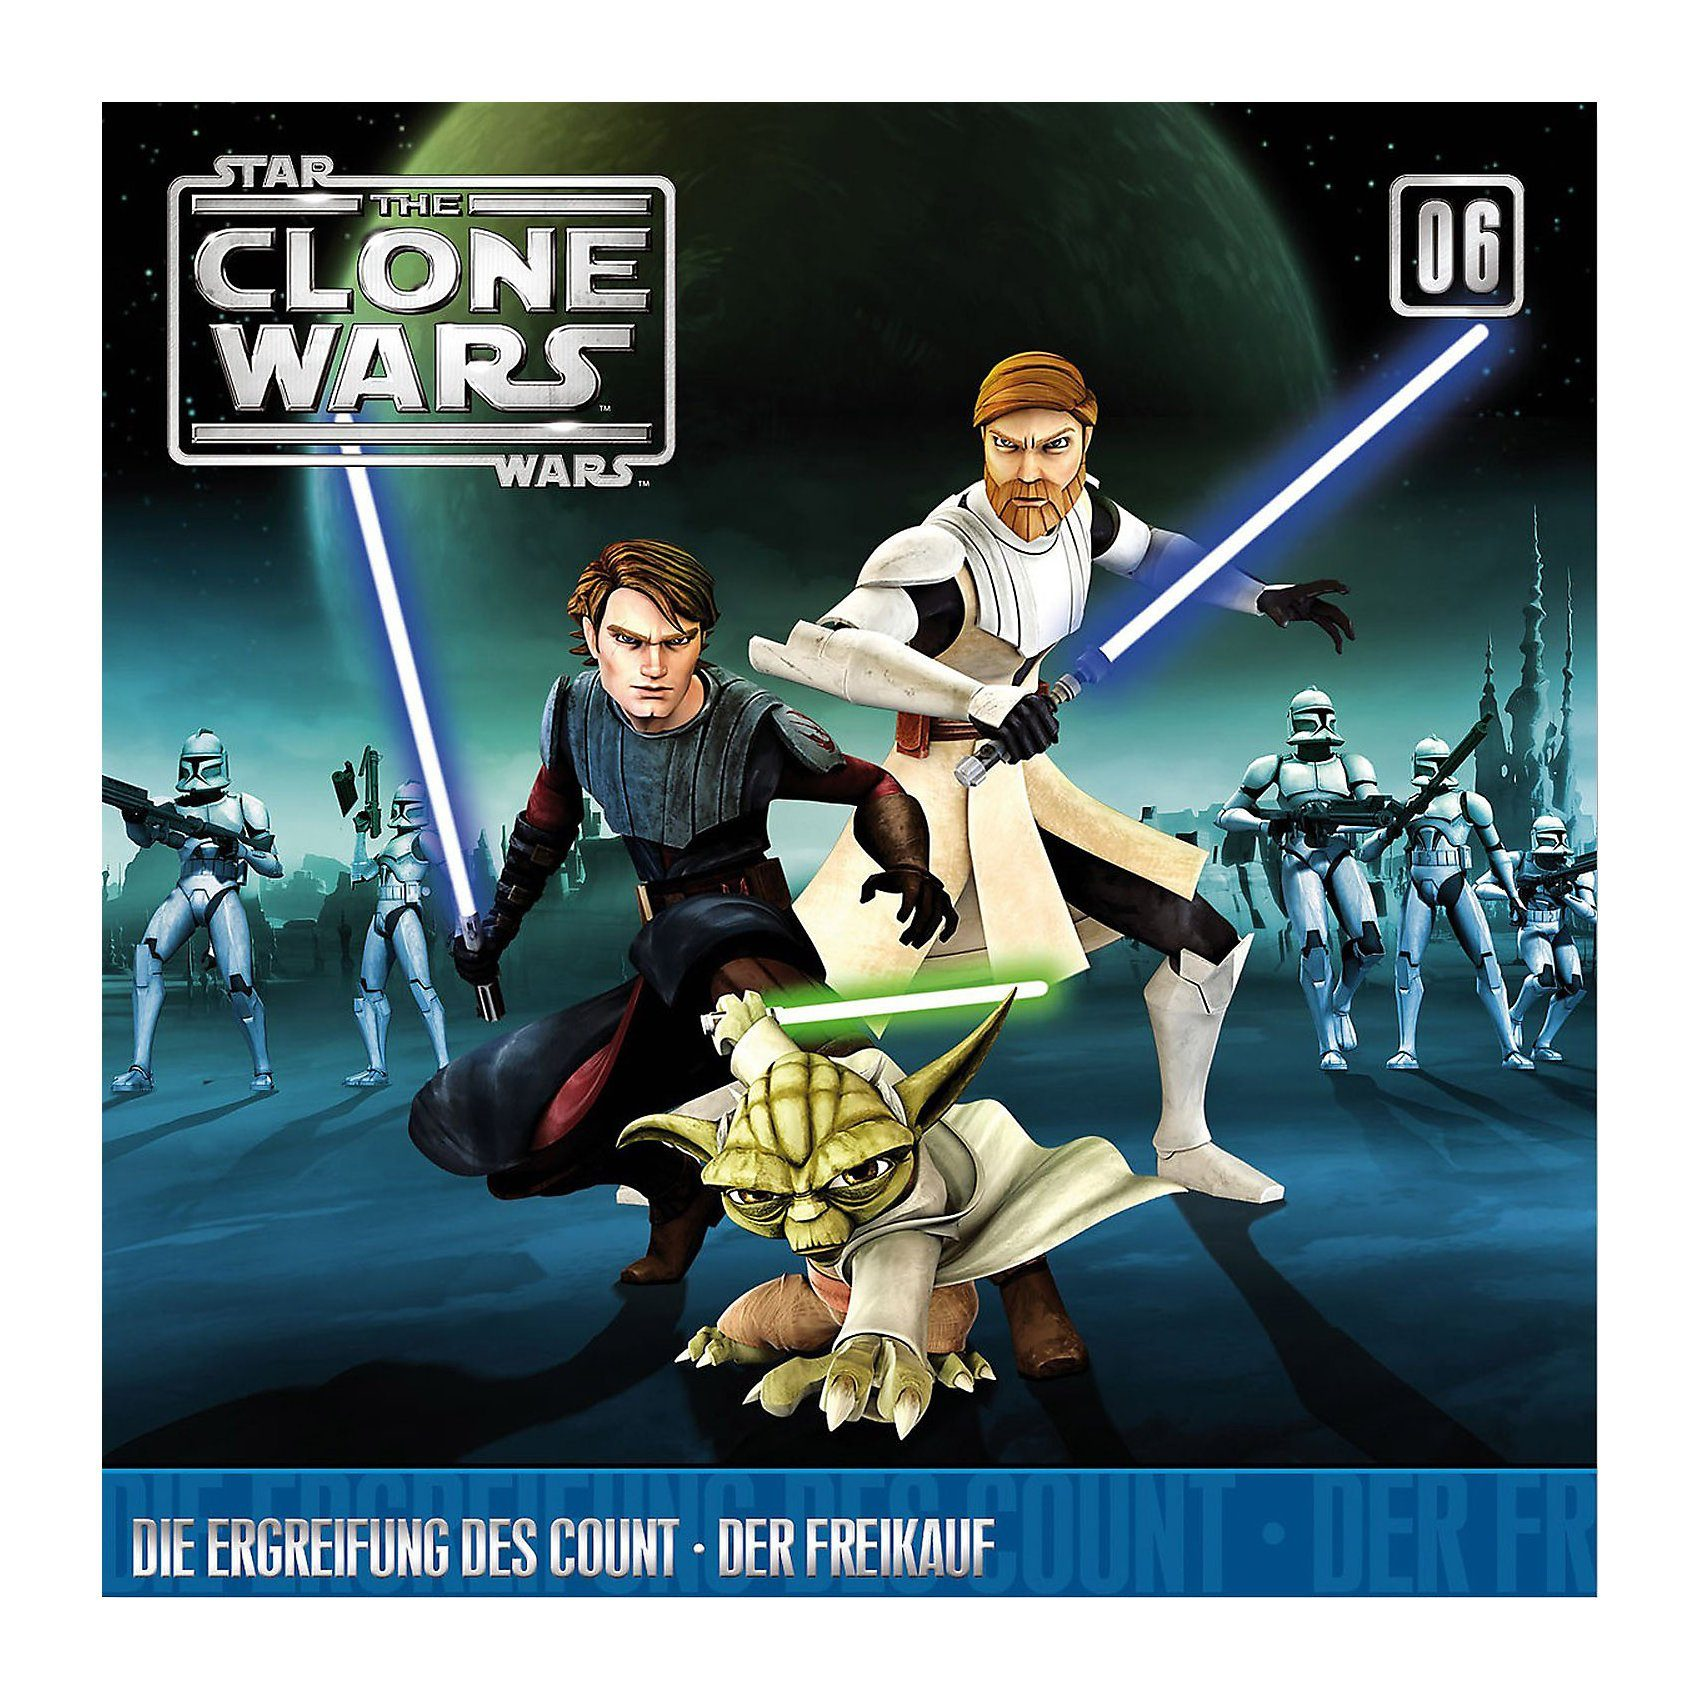 Universal CD Star Wars - The Clone Wars 06 - Die Ergreifung des Count